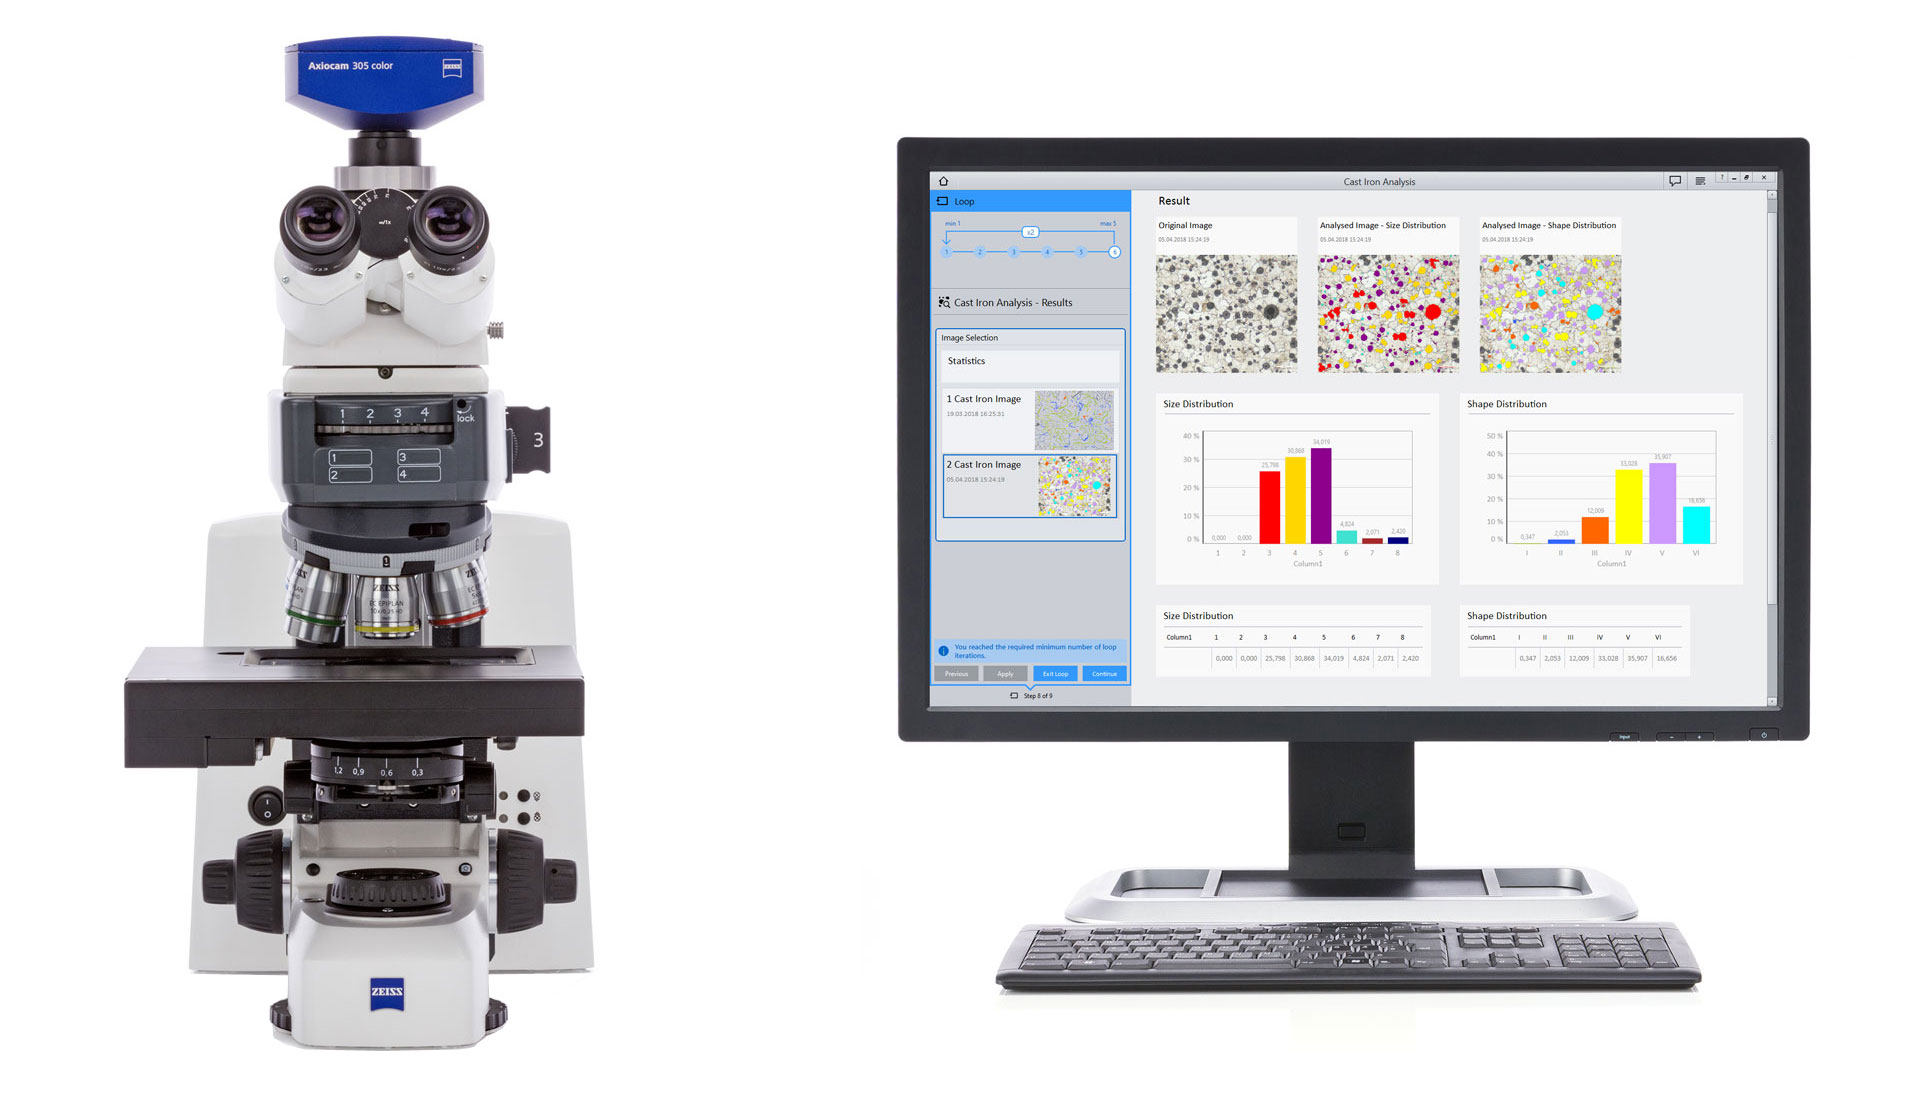 Axioscope for Materials - Microscope for Research and Routine